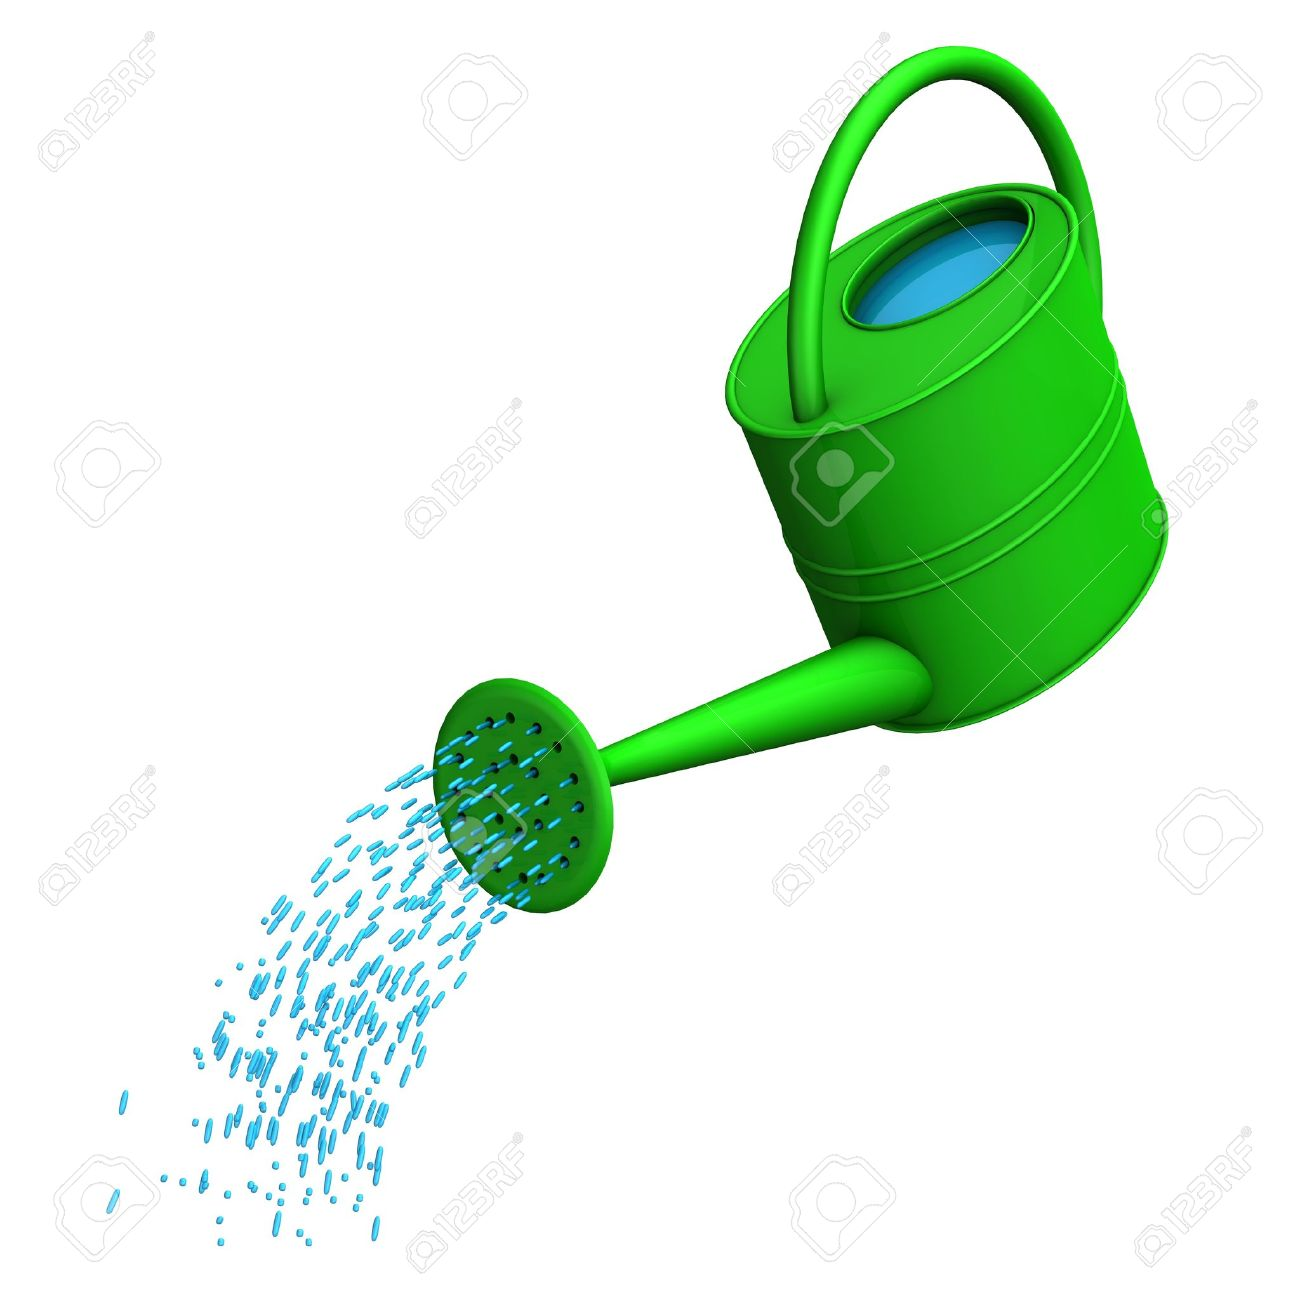 green watering can on the white background stock photo 17726519